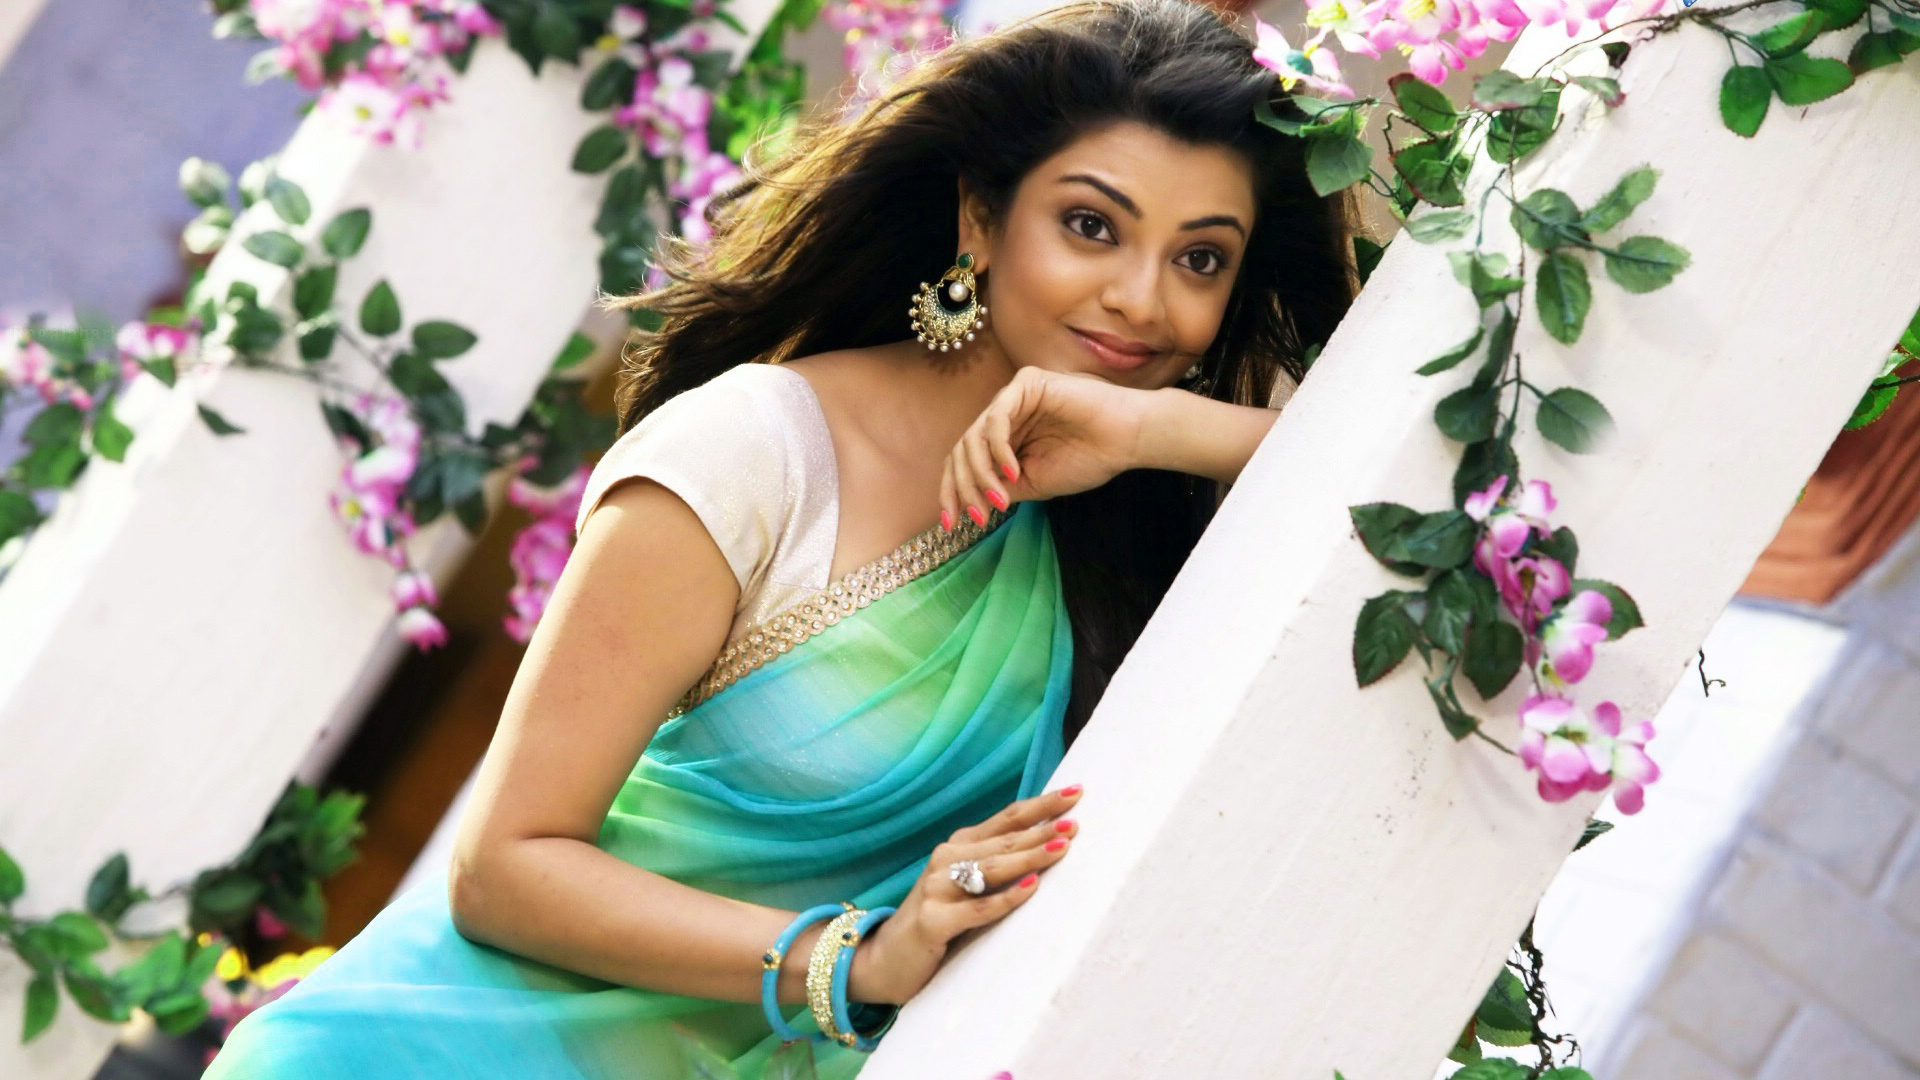 KAJAL AGARWAL IMAGES WALLPAPER PICTURES DOWLLOAD